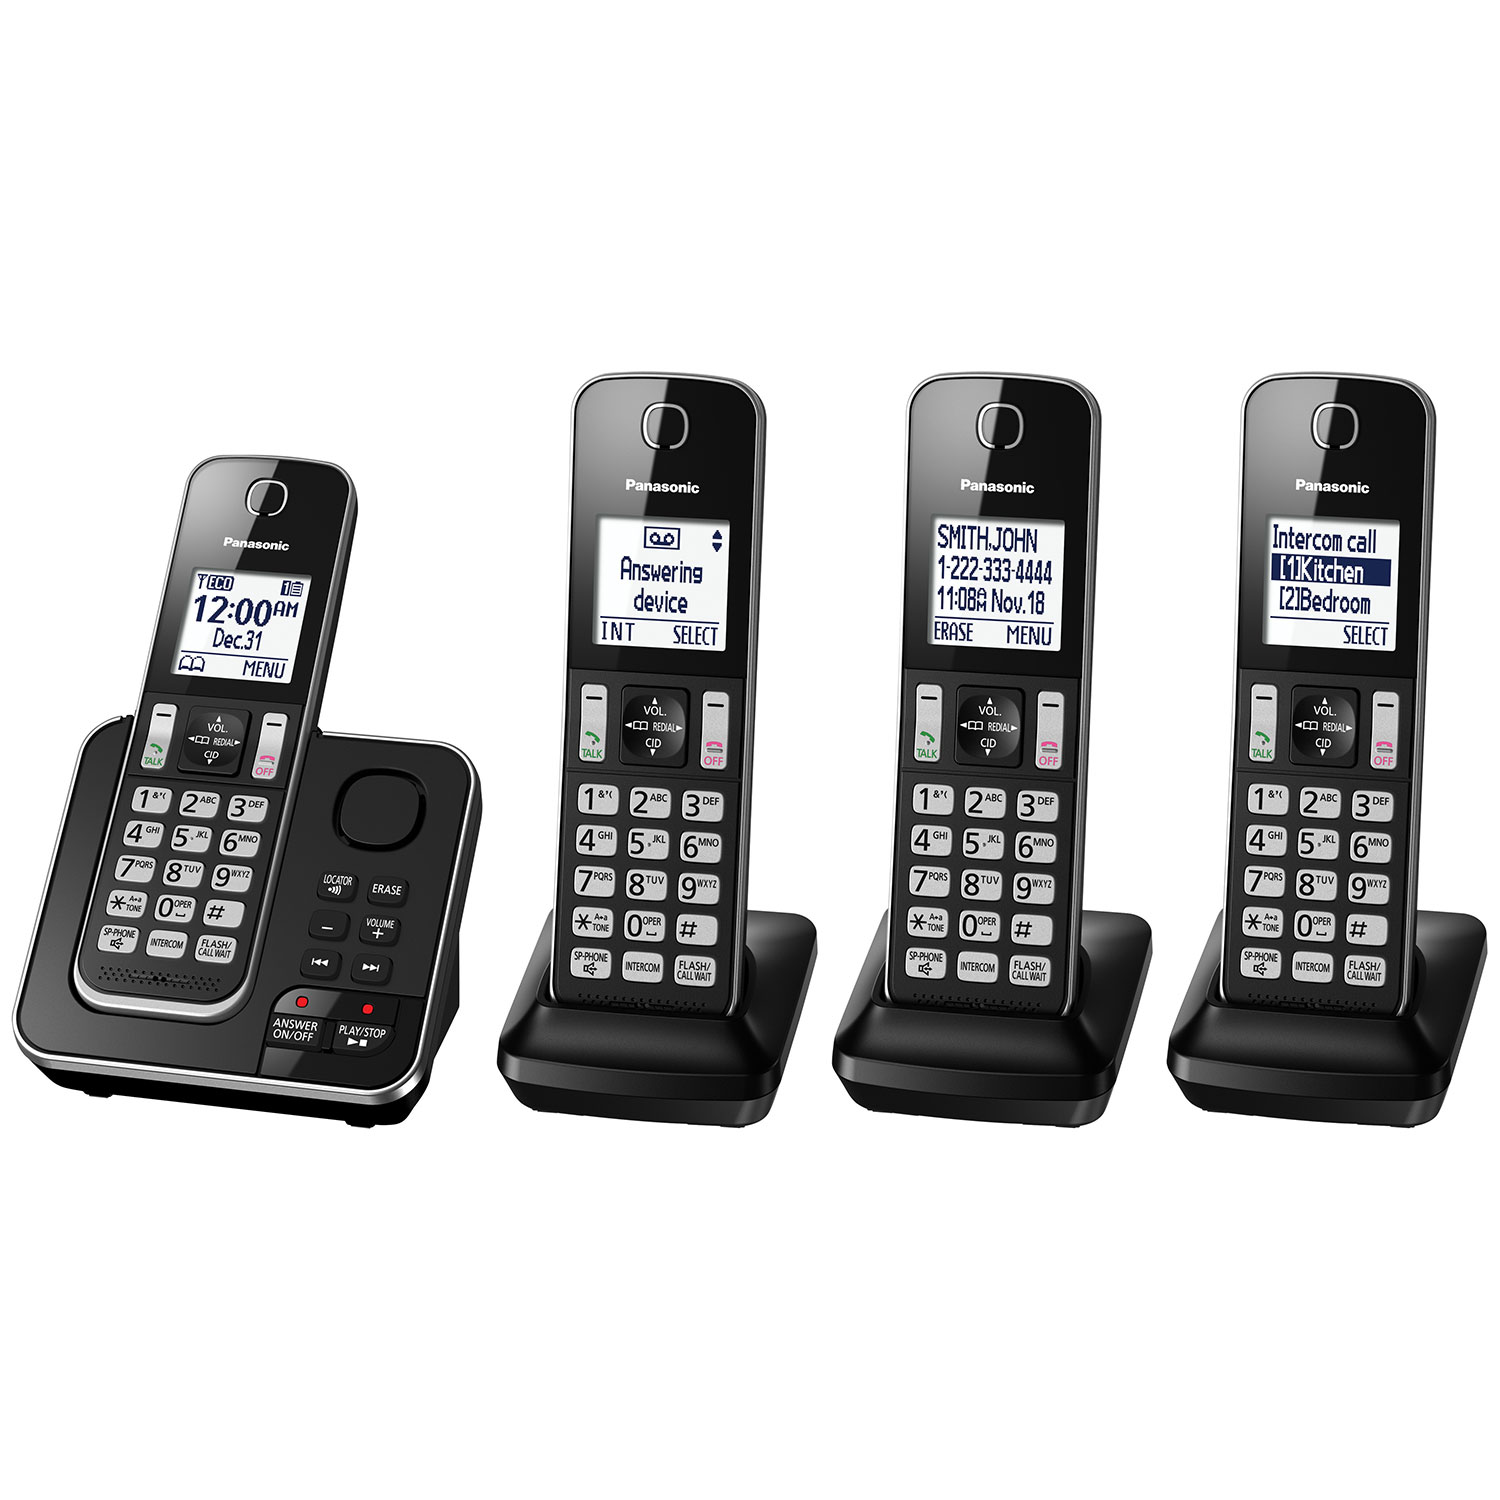 Panasonic 4-Handset DECT Cordless Phone with Answering Machine (KXTGD394B) 1e0ec7015c